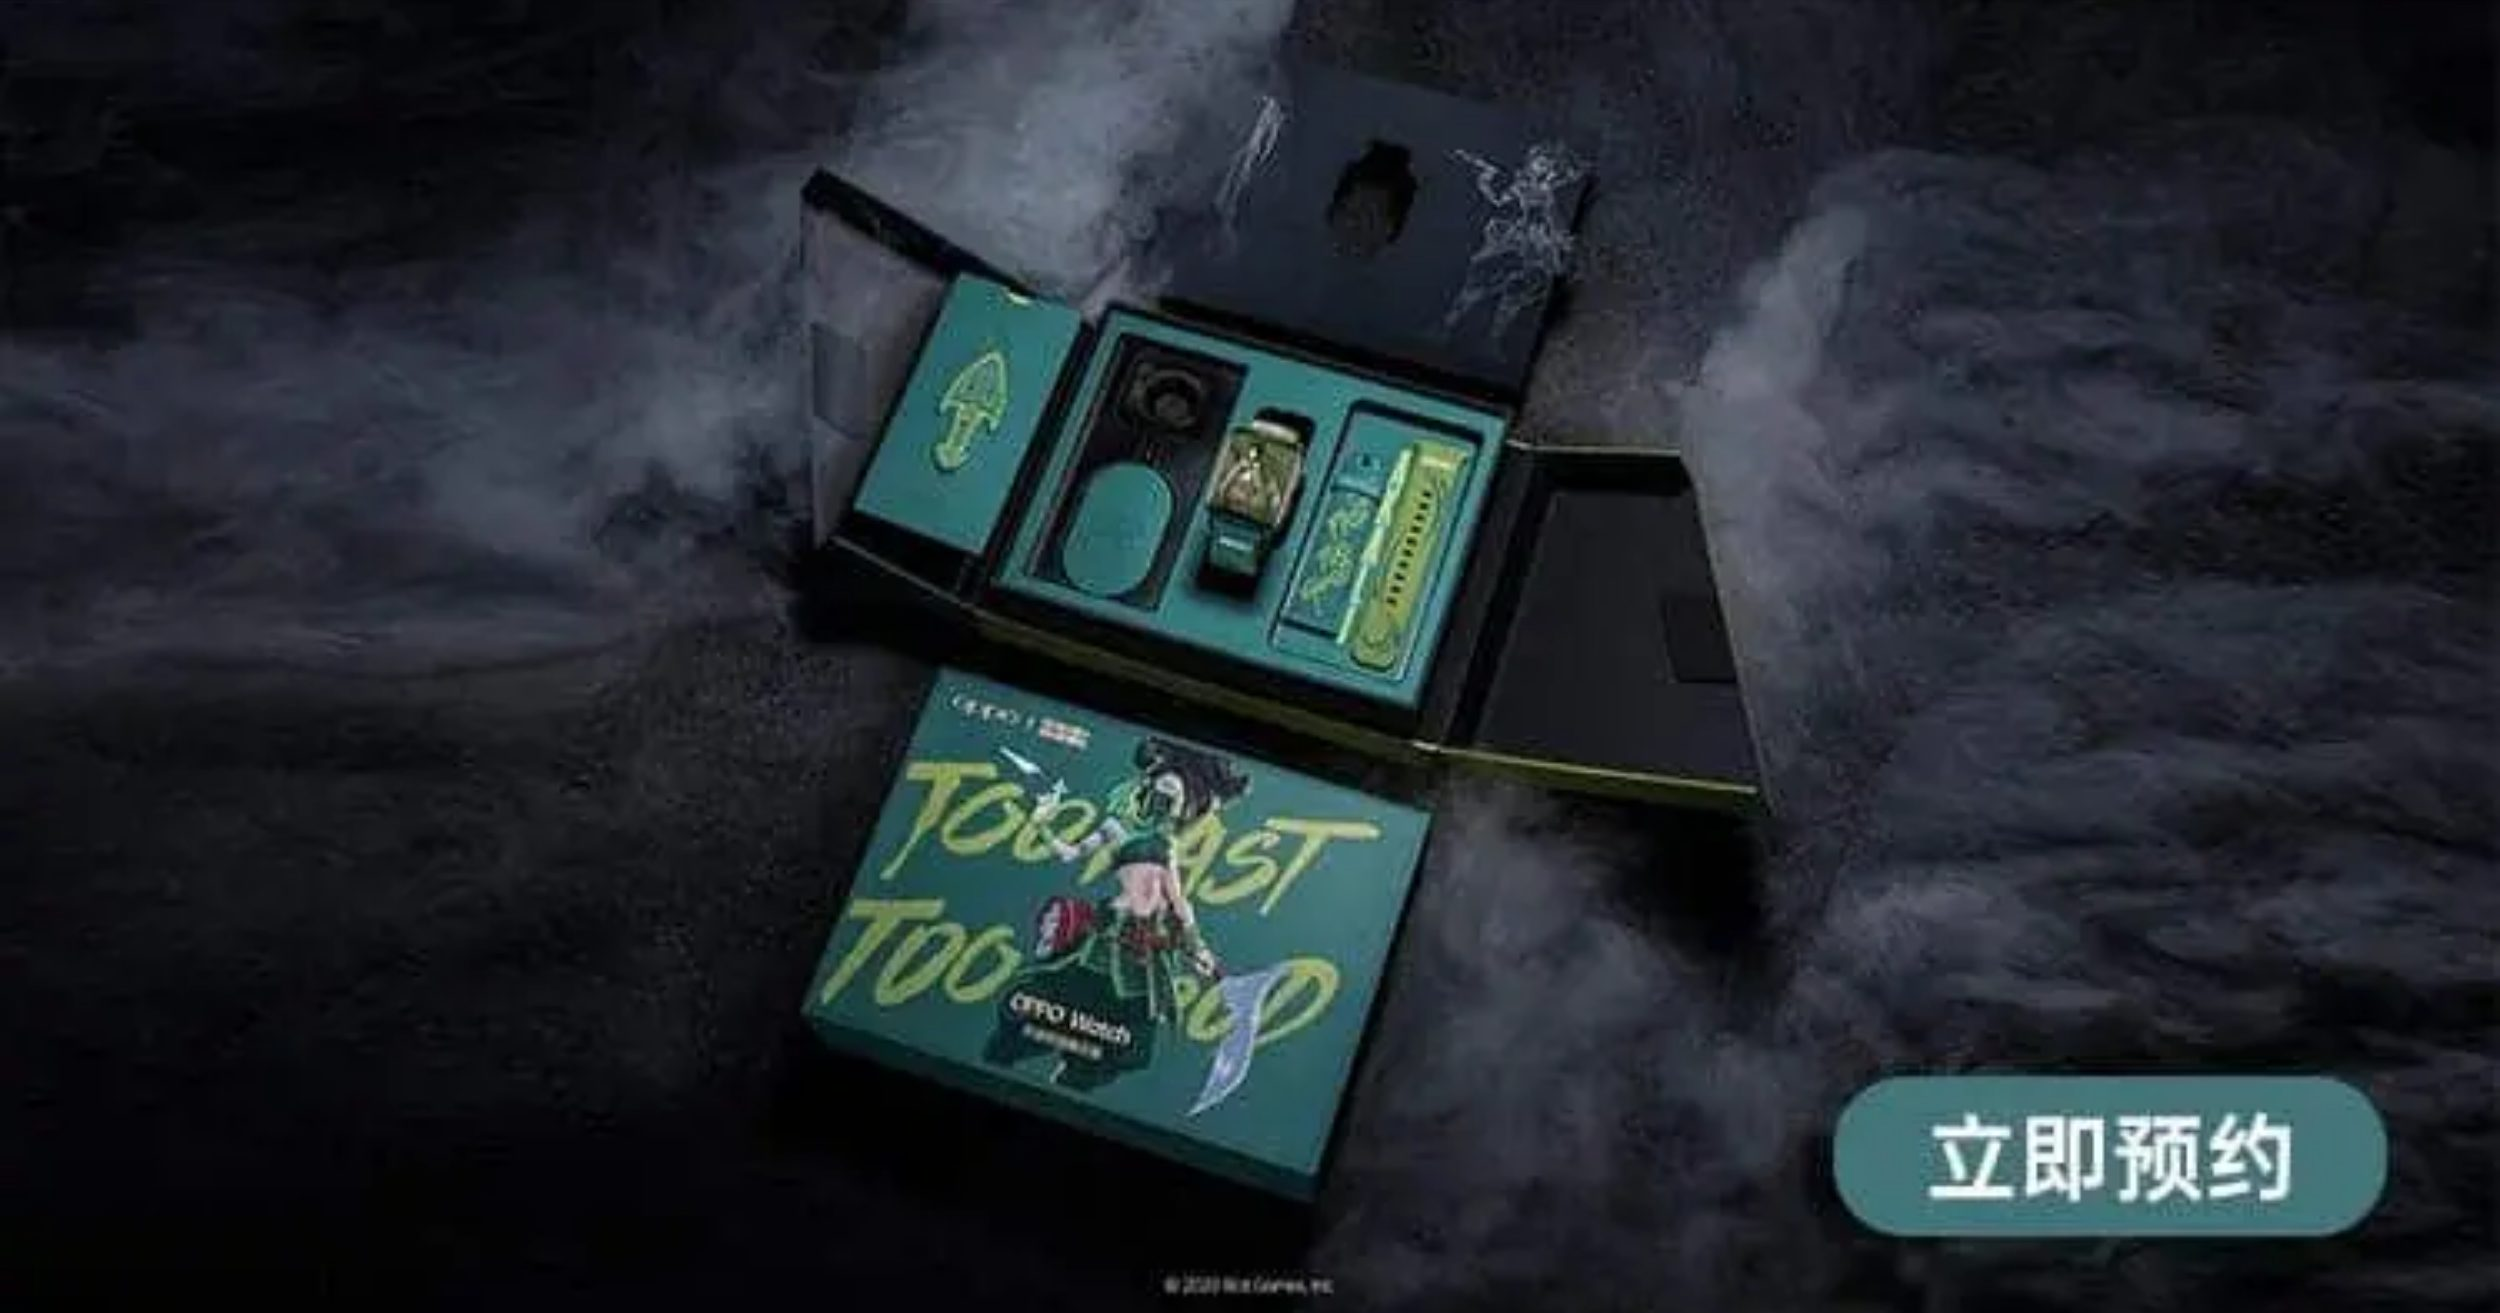 oppo-find-x2-oppo-watch-league-of-legends-s10-the-perfect-pair-for-gamers